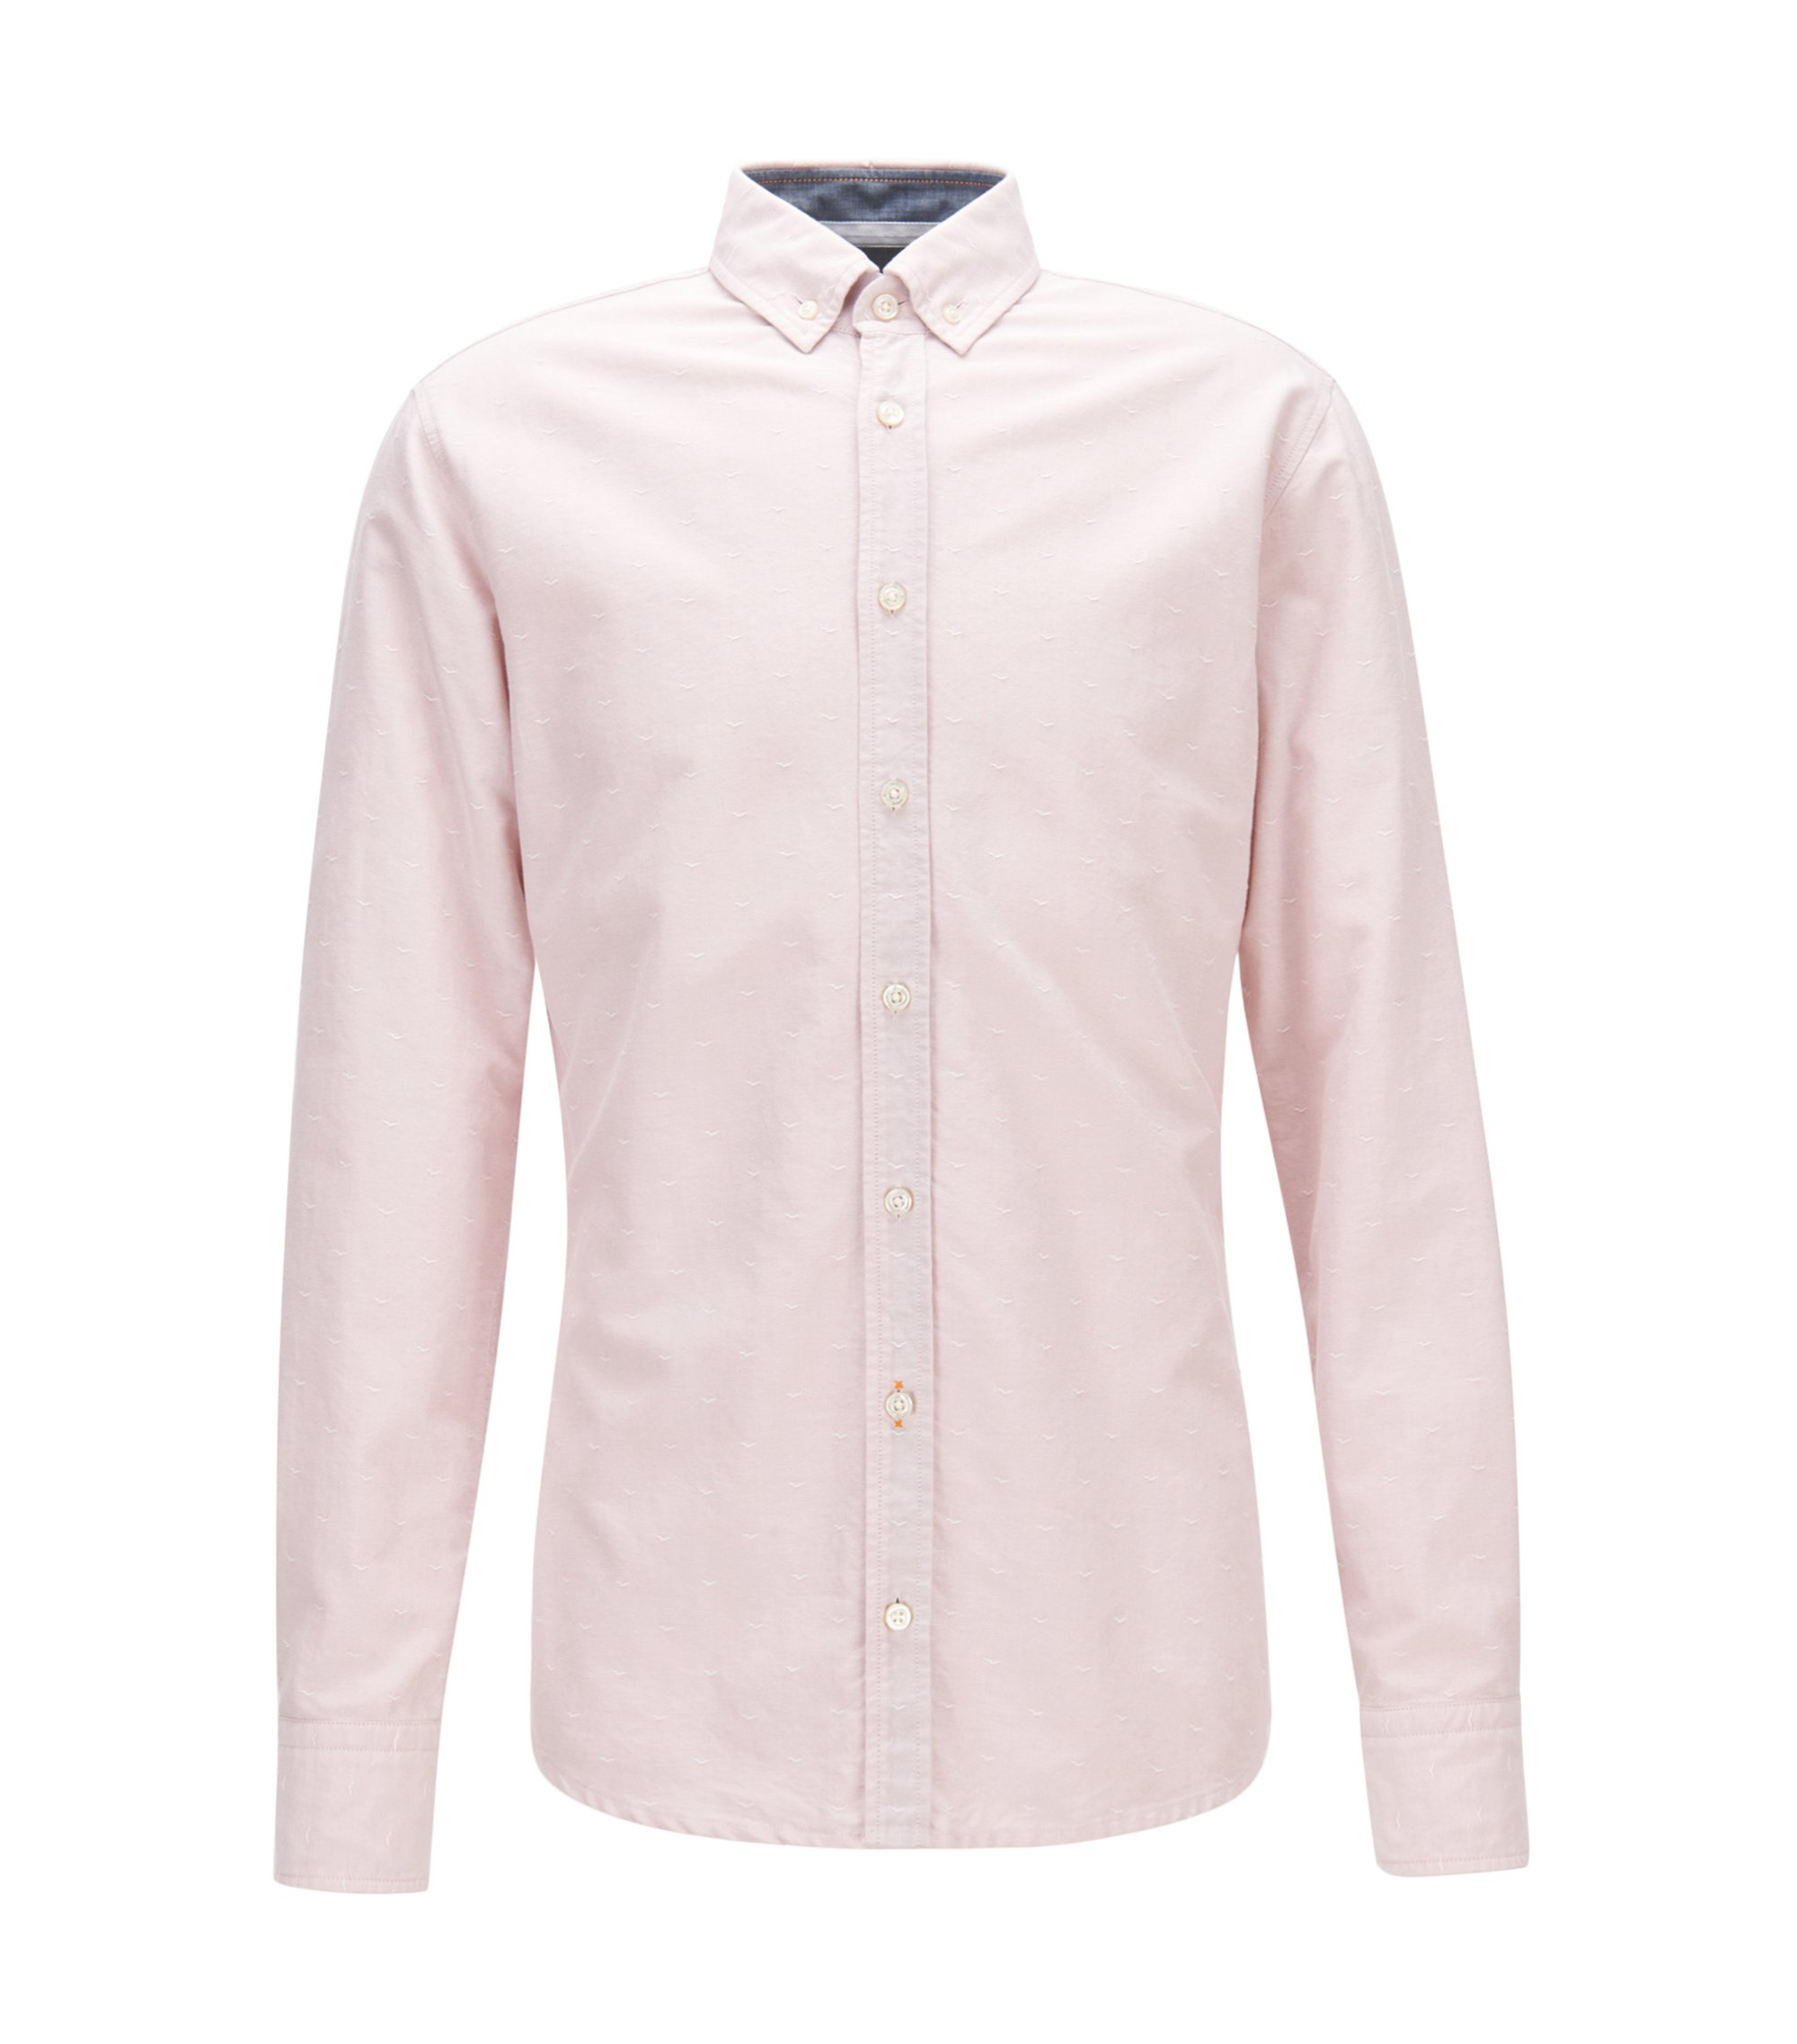 Slim-fit shirt in dobby Oxford cotton, light pink